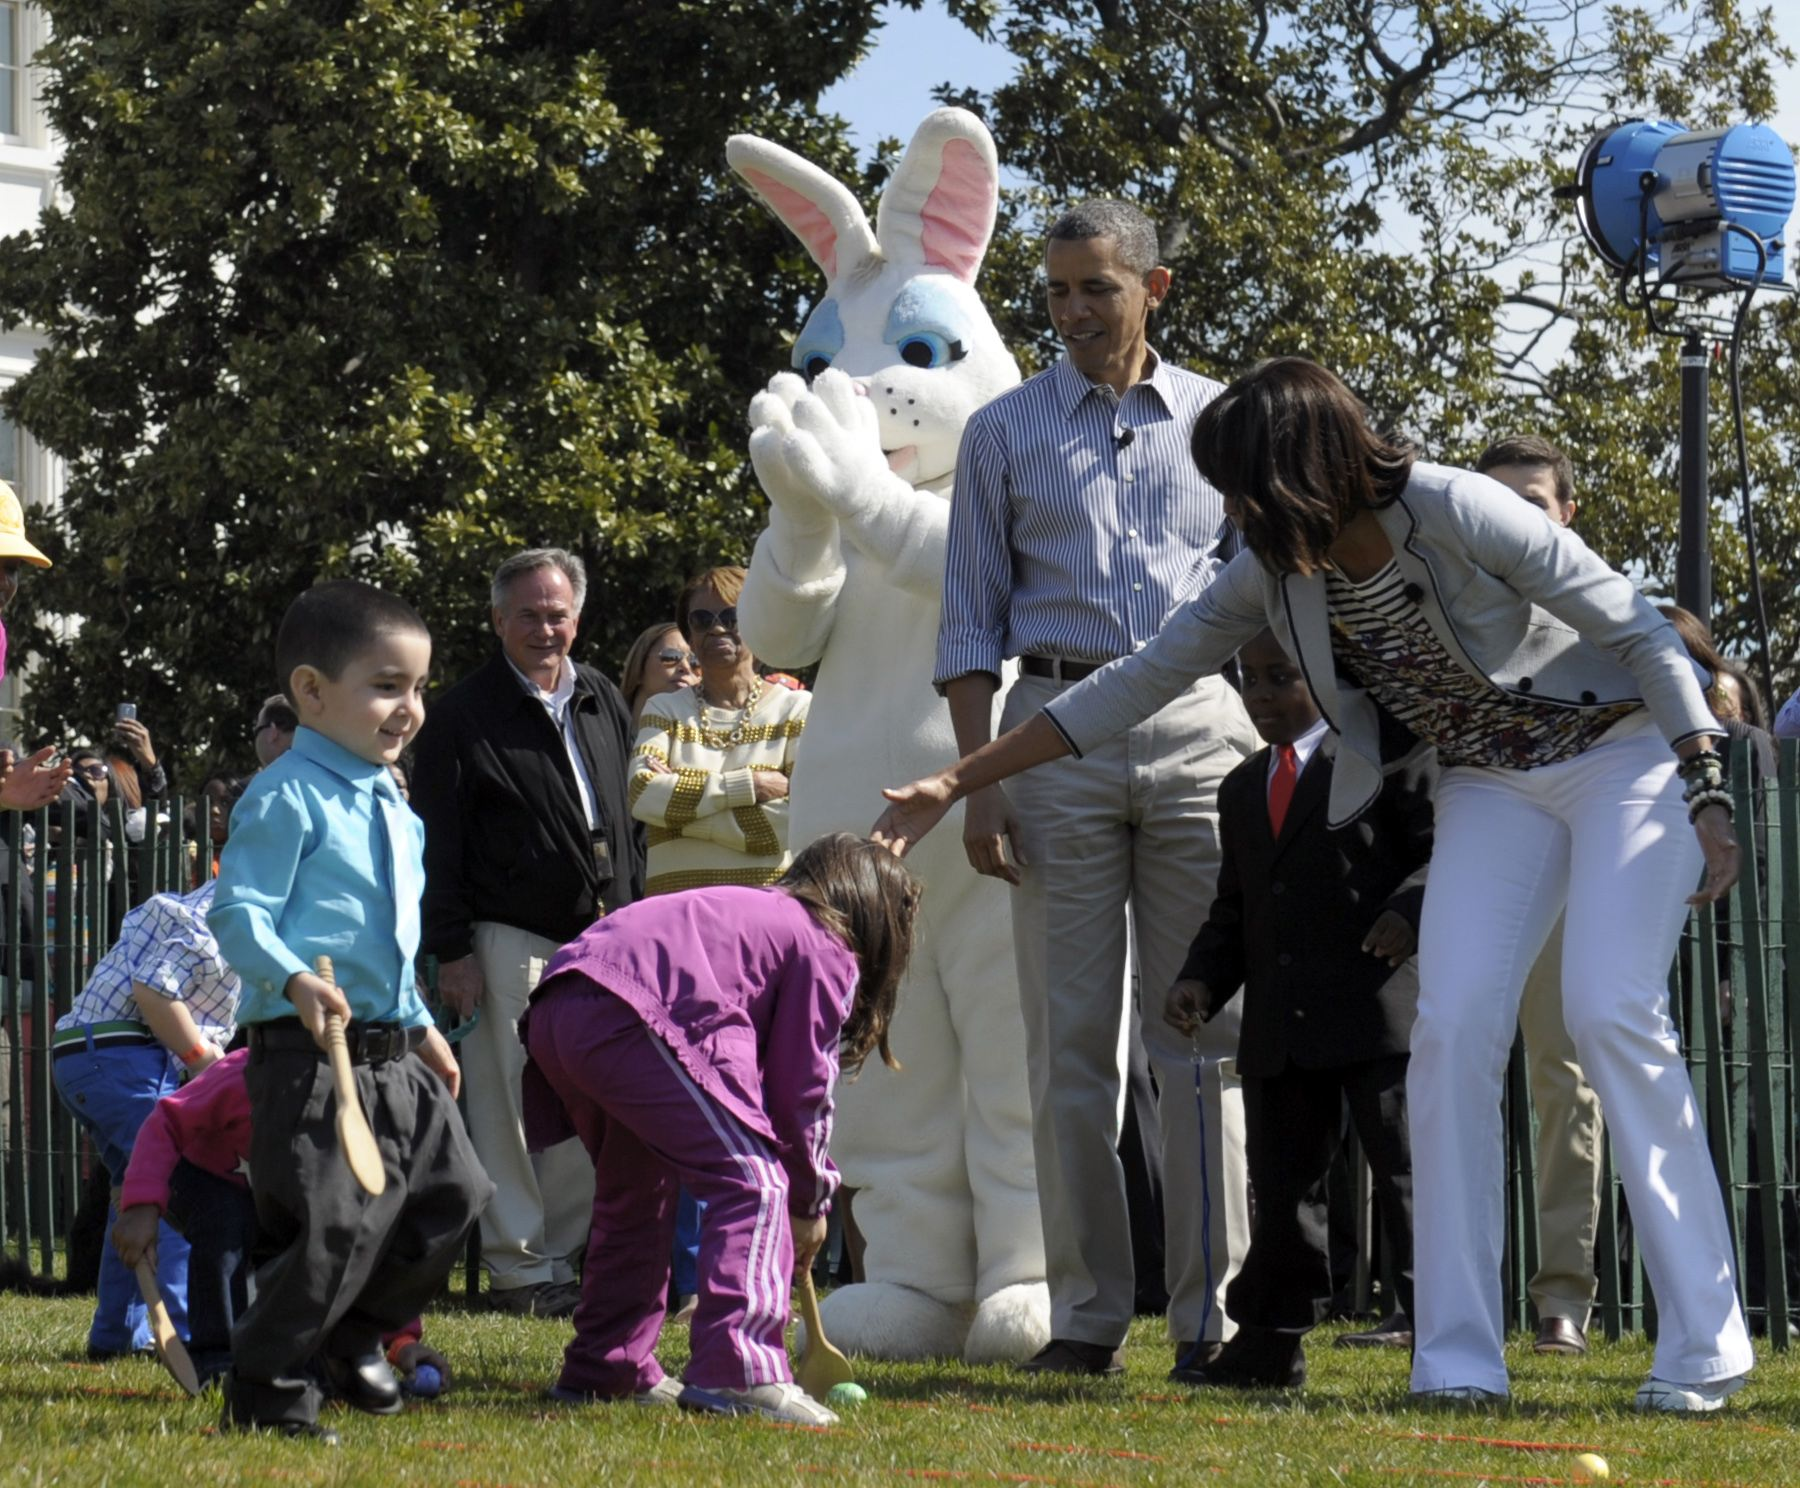 despite sequester, obama's egg roll rolls on - washington times